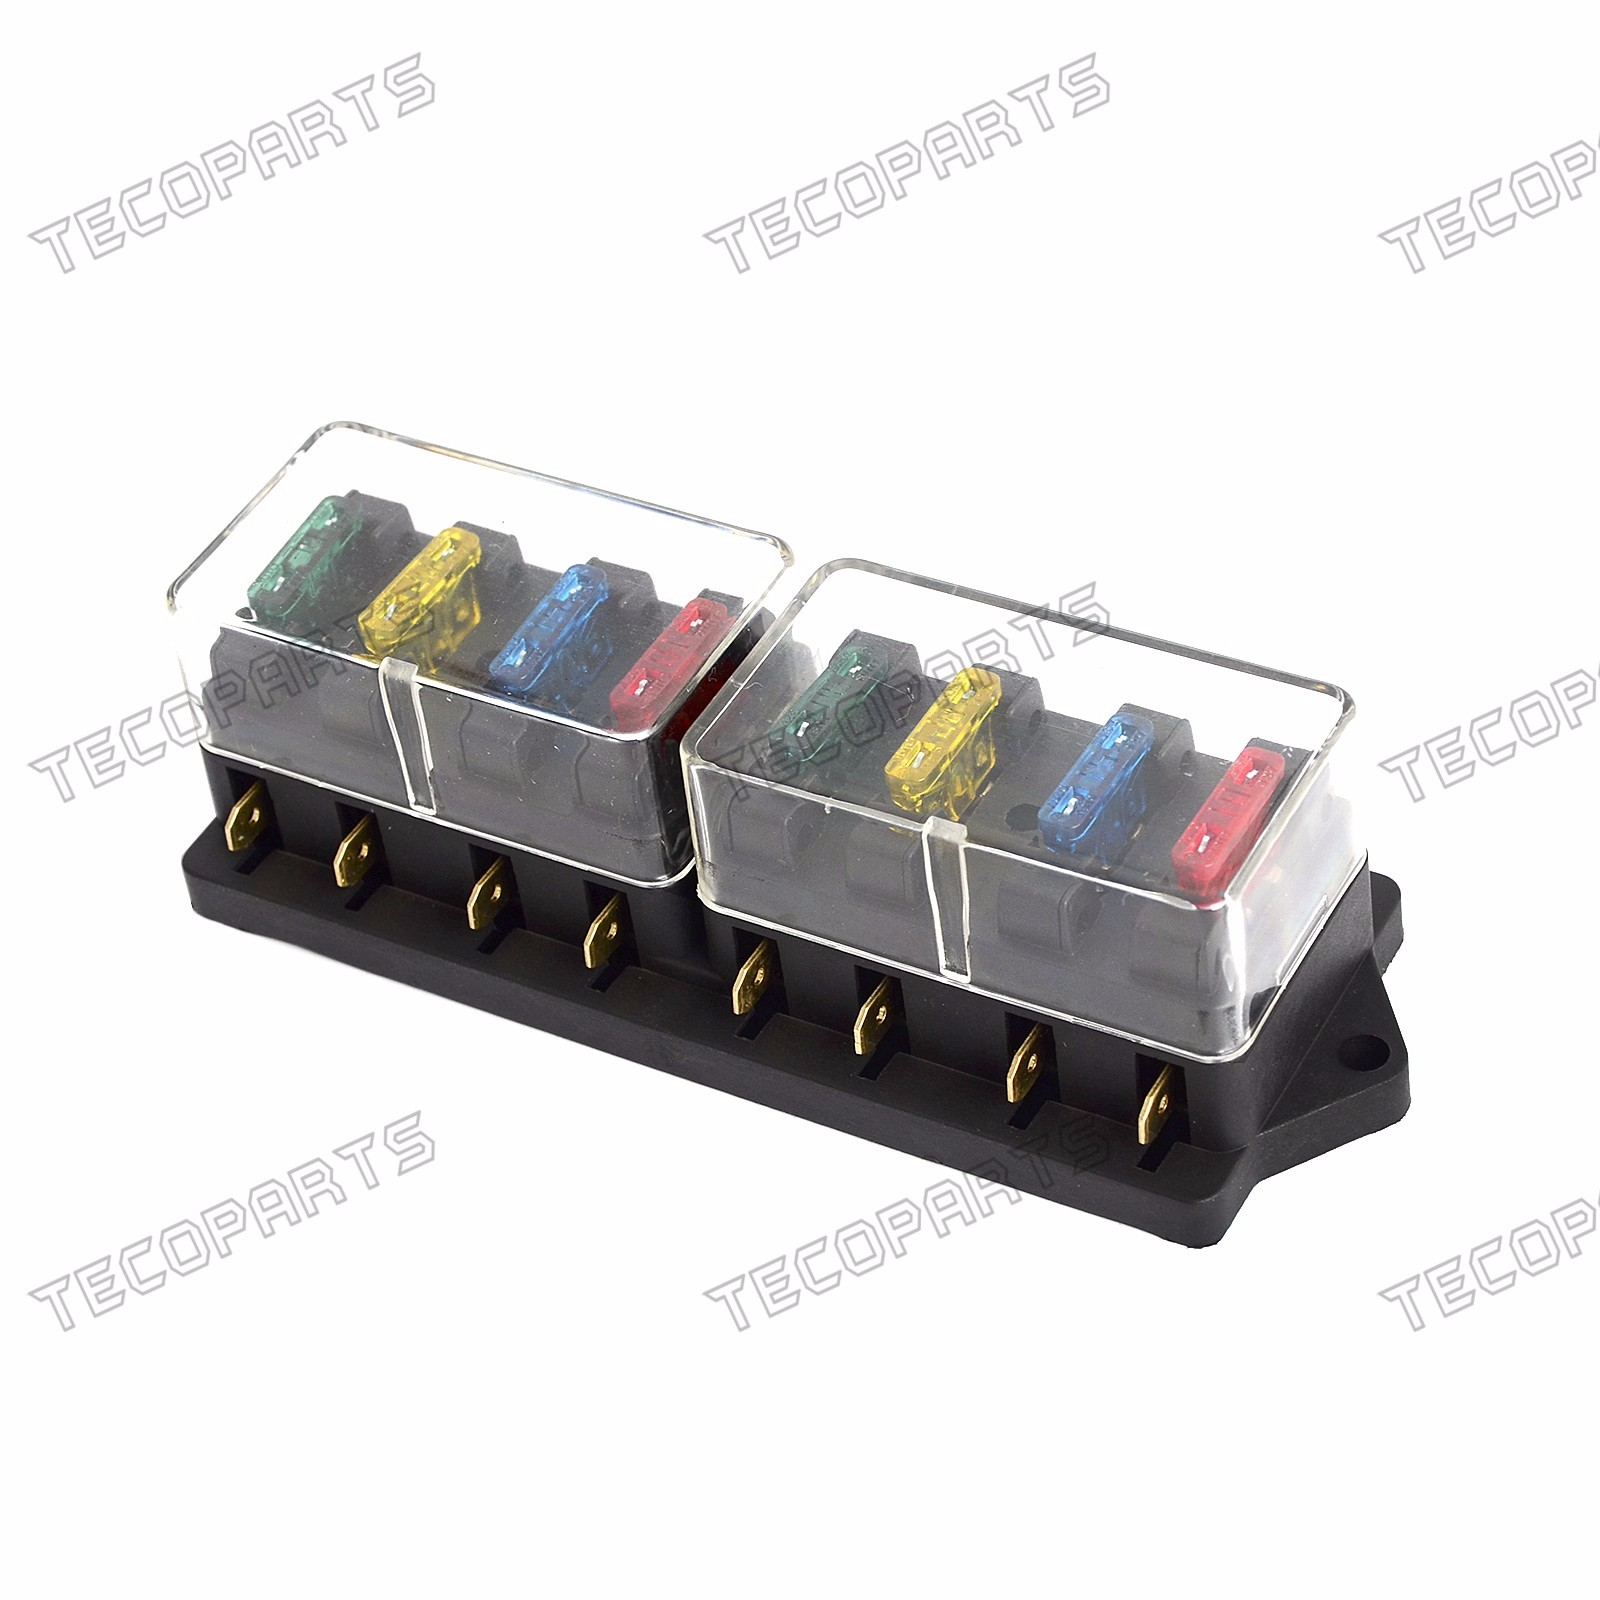 hight resolution of details about new car vehicle 12v 24v 8 way circuit atc ato standard blade fuse box holder